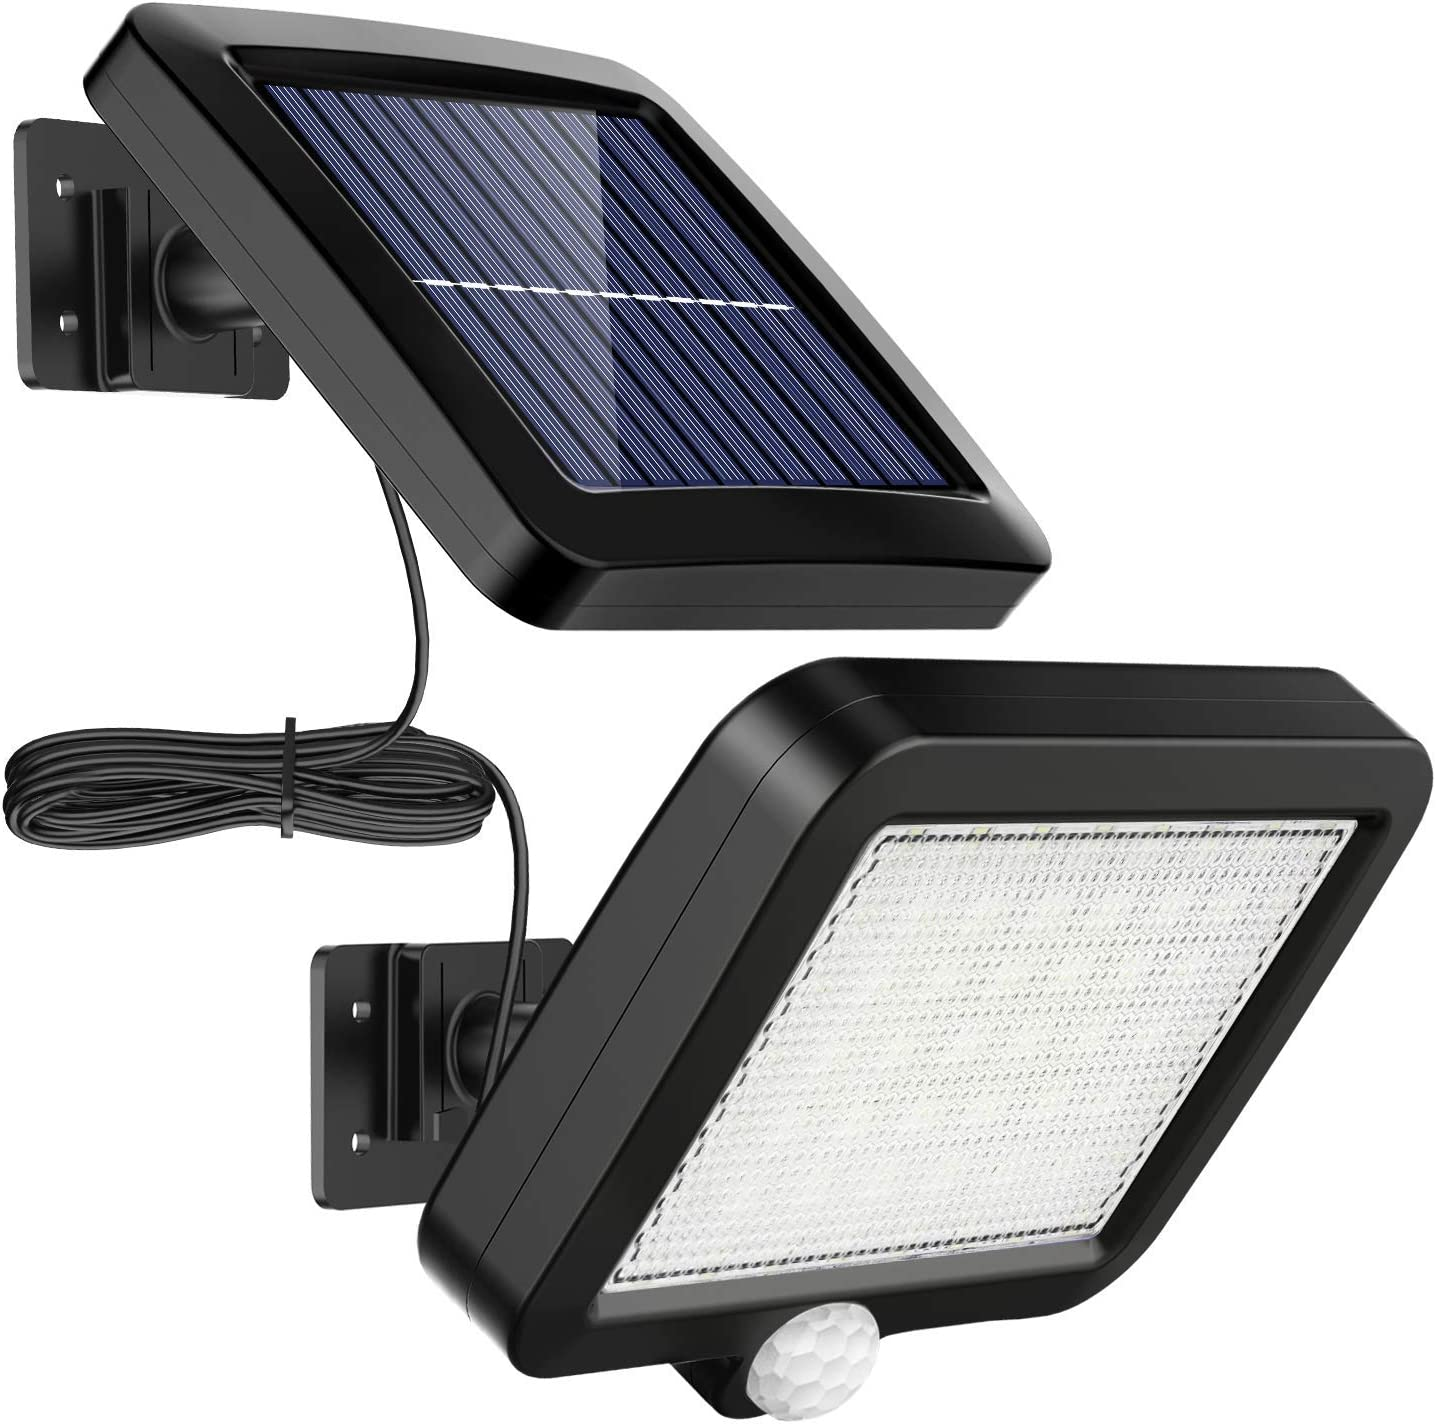 MPJ Solar Light Outdoor,56 LED Solar Light Outside with Motion Detector, IP65 Waterproof, 120° Lighting Angle, Solar Wall Light for Garden with 16.5ft Cable